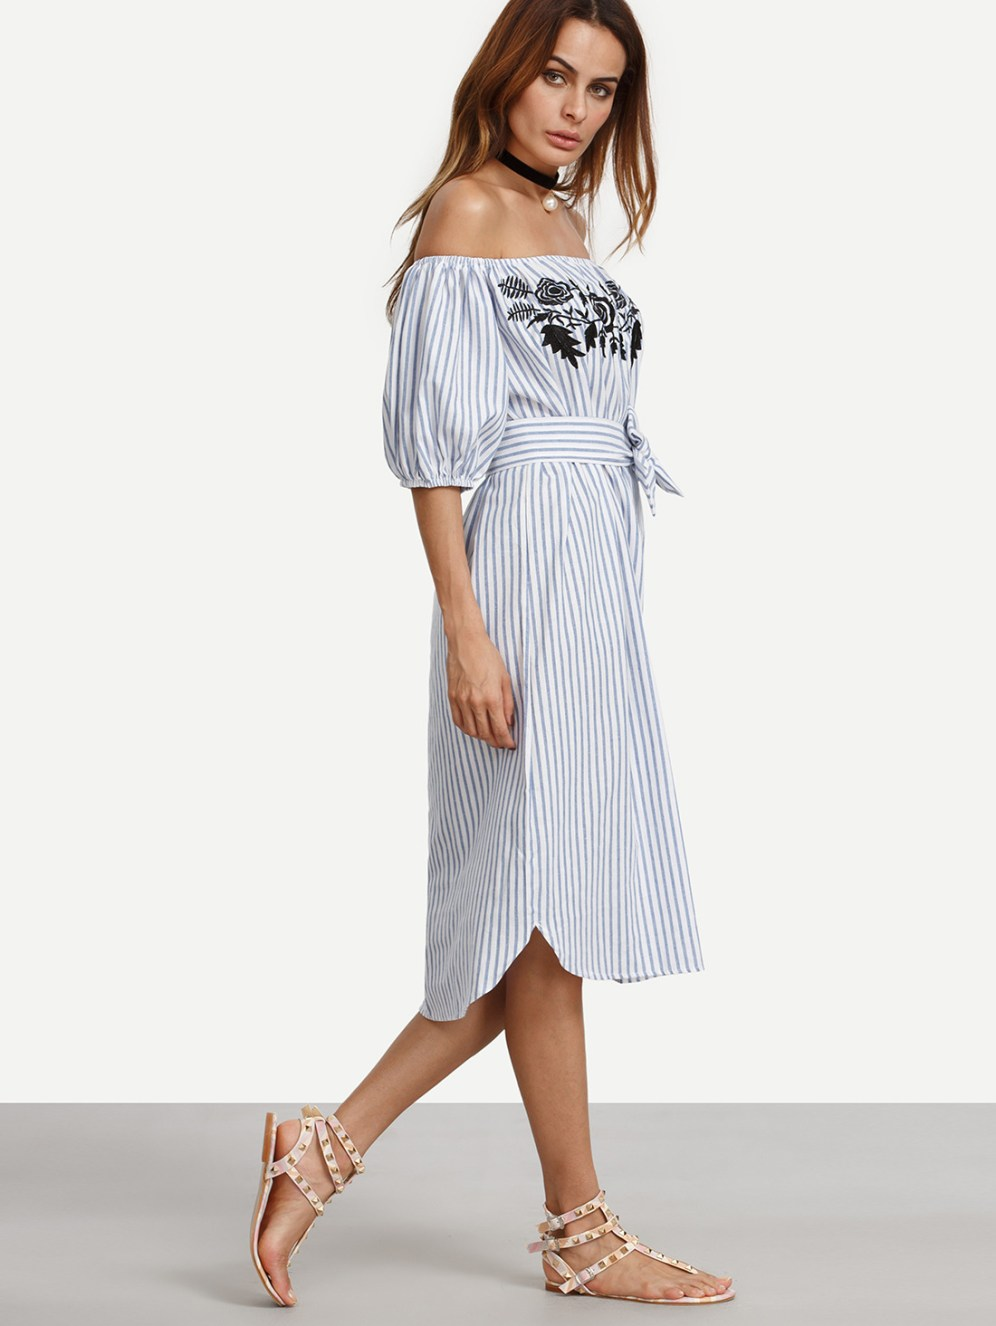 http://us.shein.com/Blue-Vertical-Striped-Off-The-Shoulder-Embroidered-Dress-p-291609-cat-1727.html